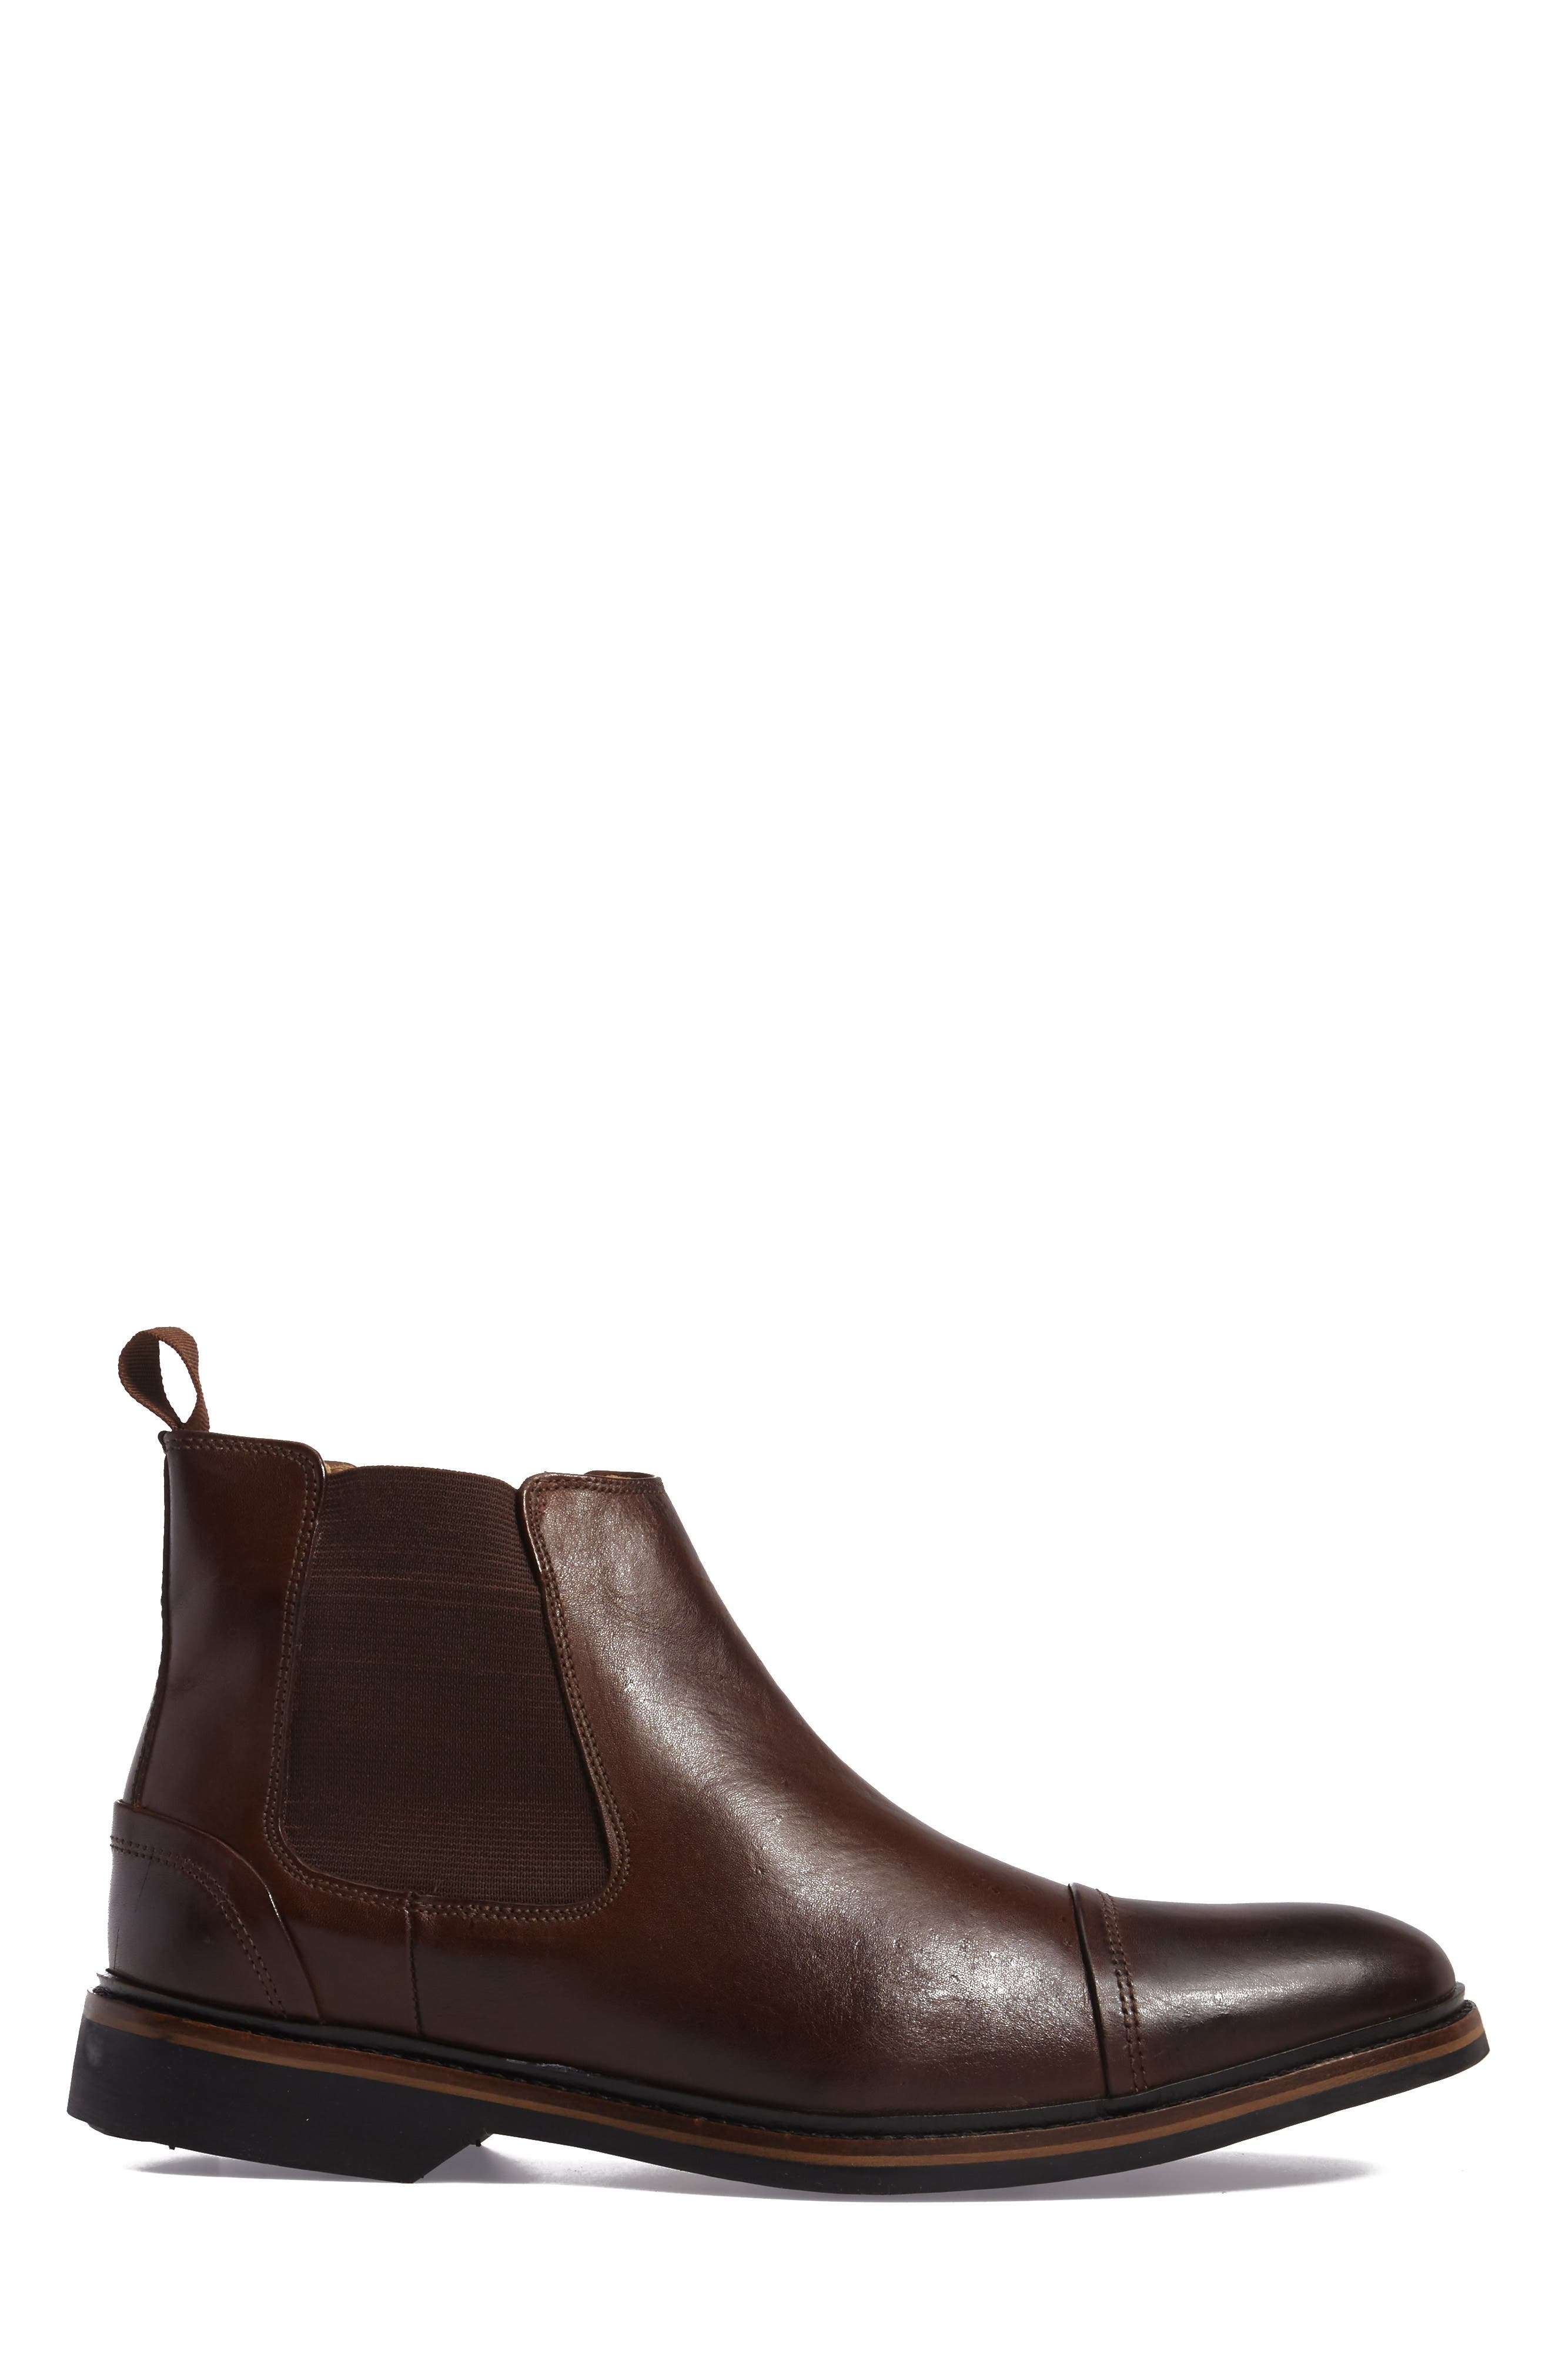 Floriano Chelsea Boot,                             Alternate thumbnail 3, color,                             Touch Castanho